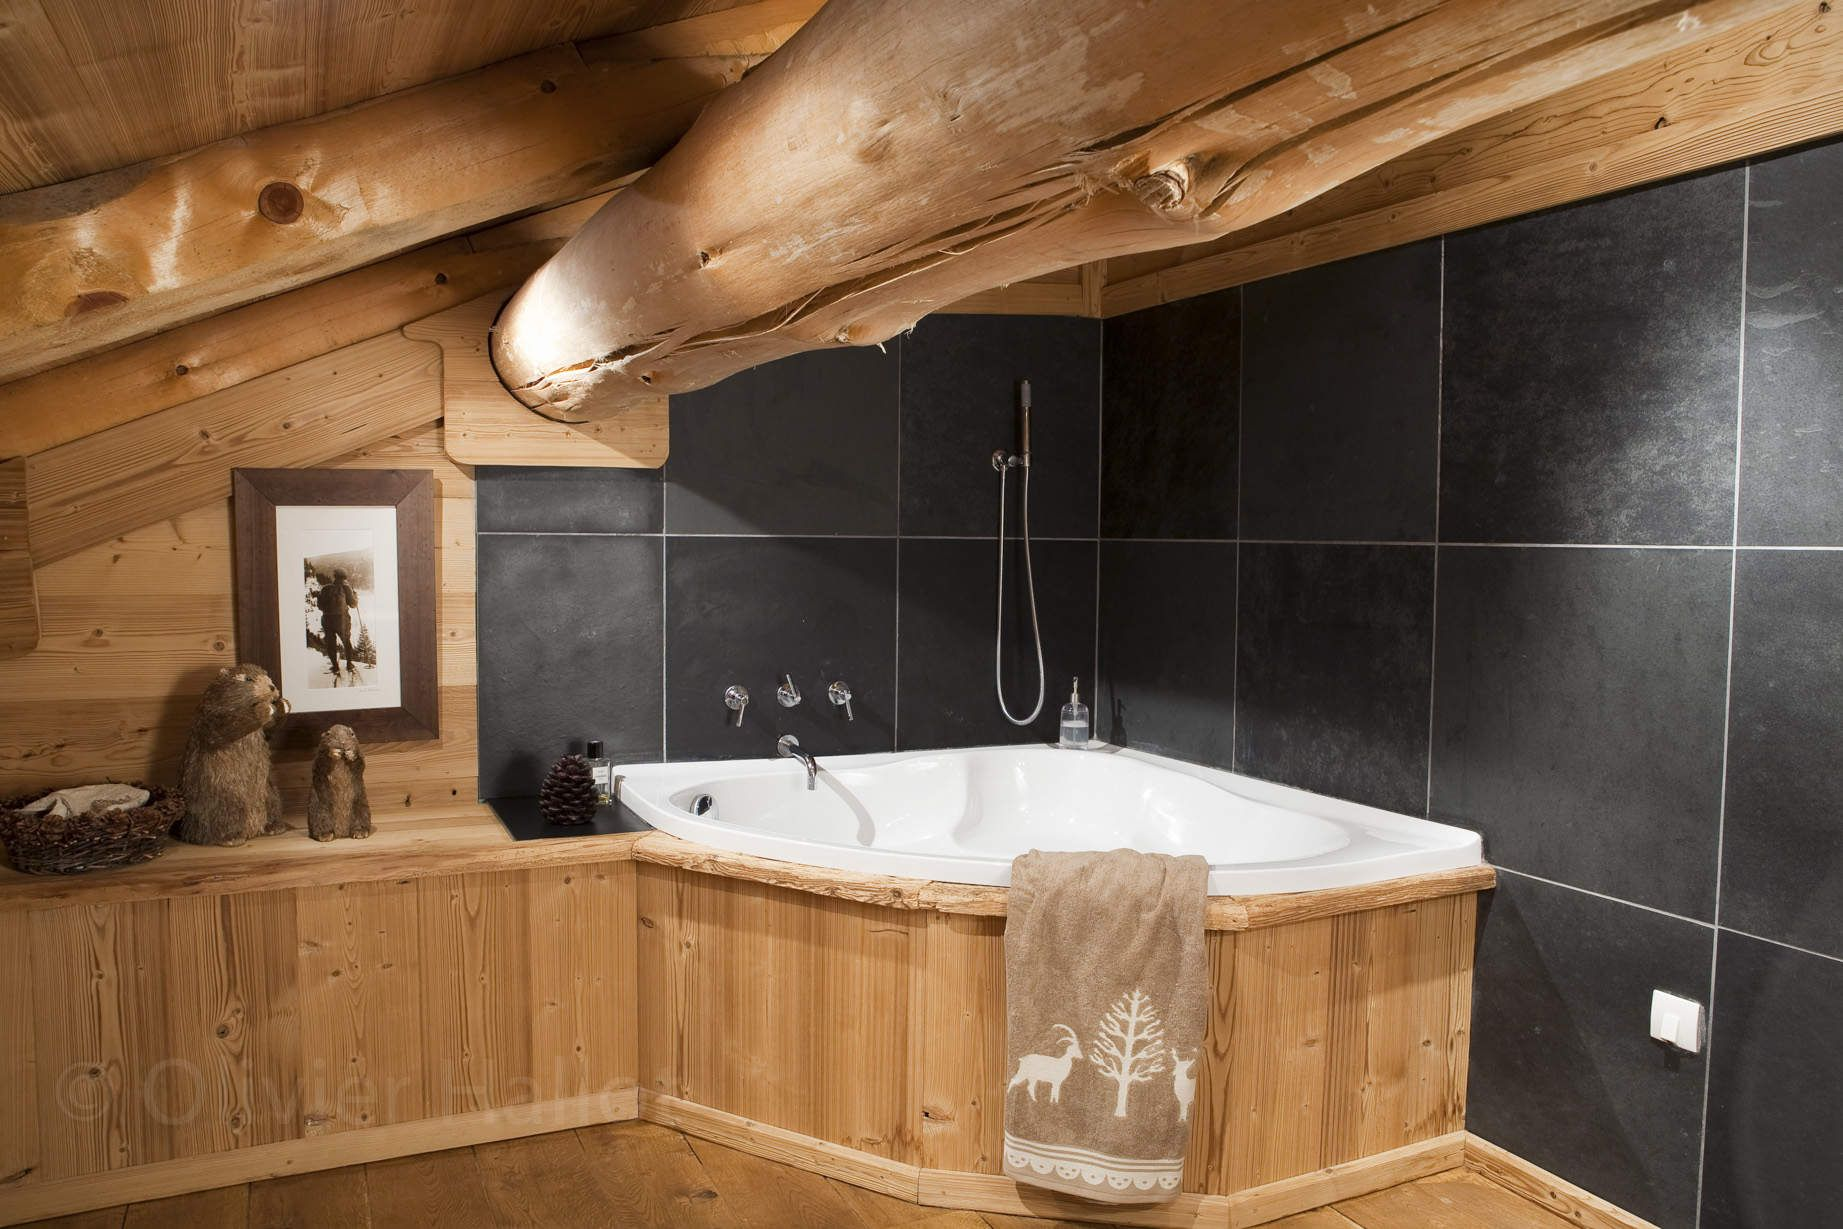 chalet les pins salle de bains badezimmer pinterest chalet salle und salle de bain. Black Bedroom Furniture Sets. Home Design Ideas